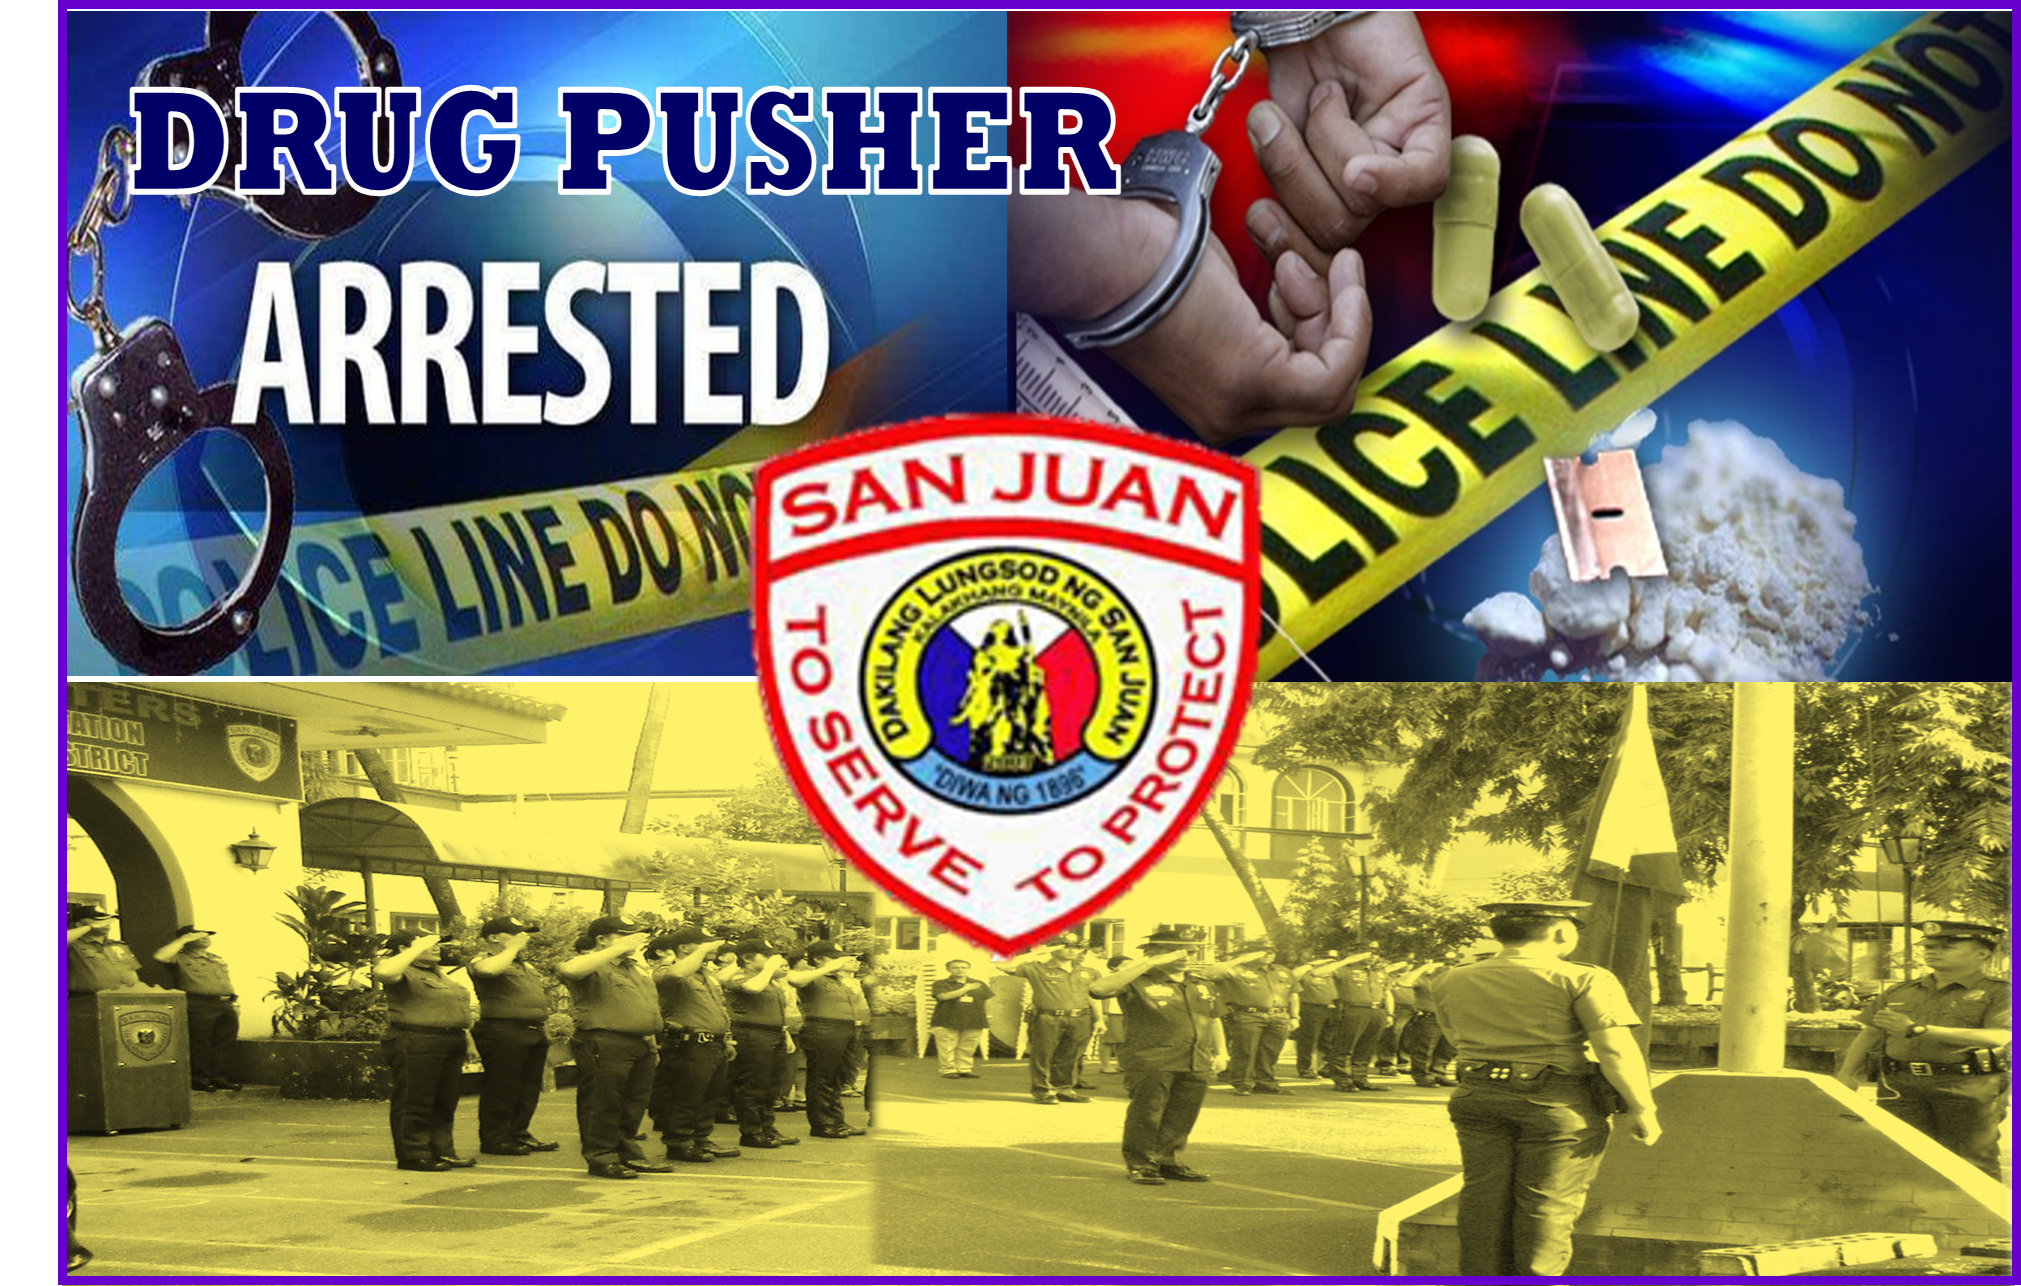 DRUG PUSHER AND THREE OTHERS NABBED BY SAN JUAN CITY POLICE